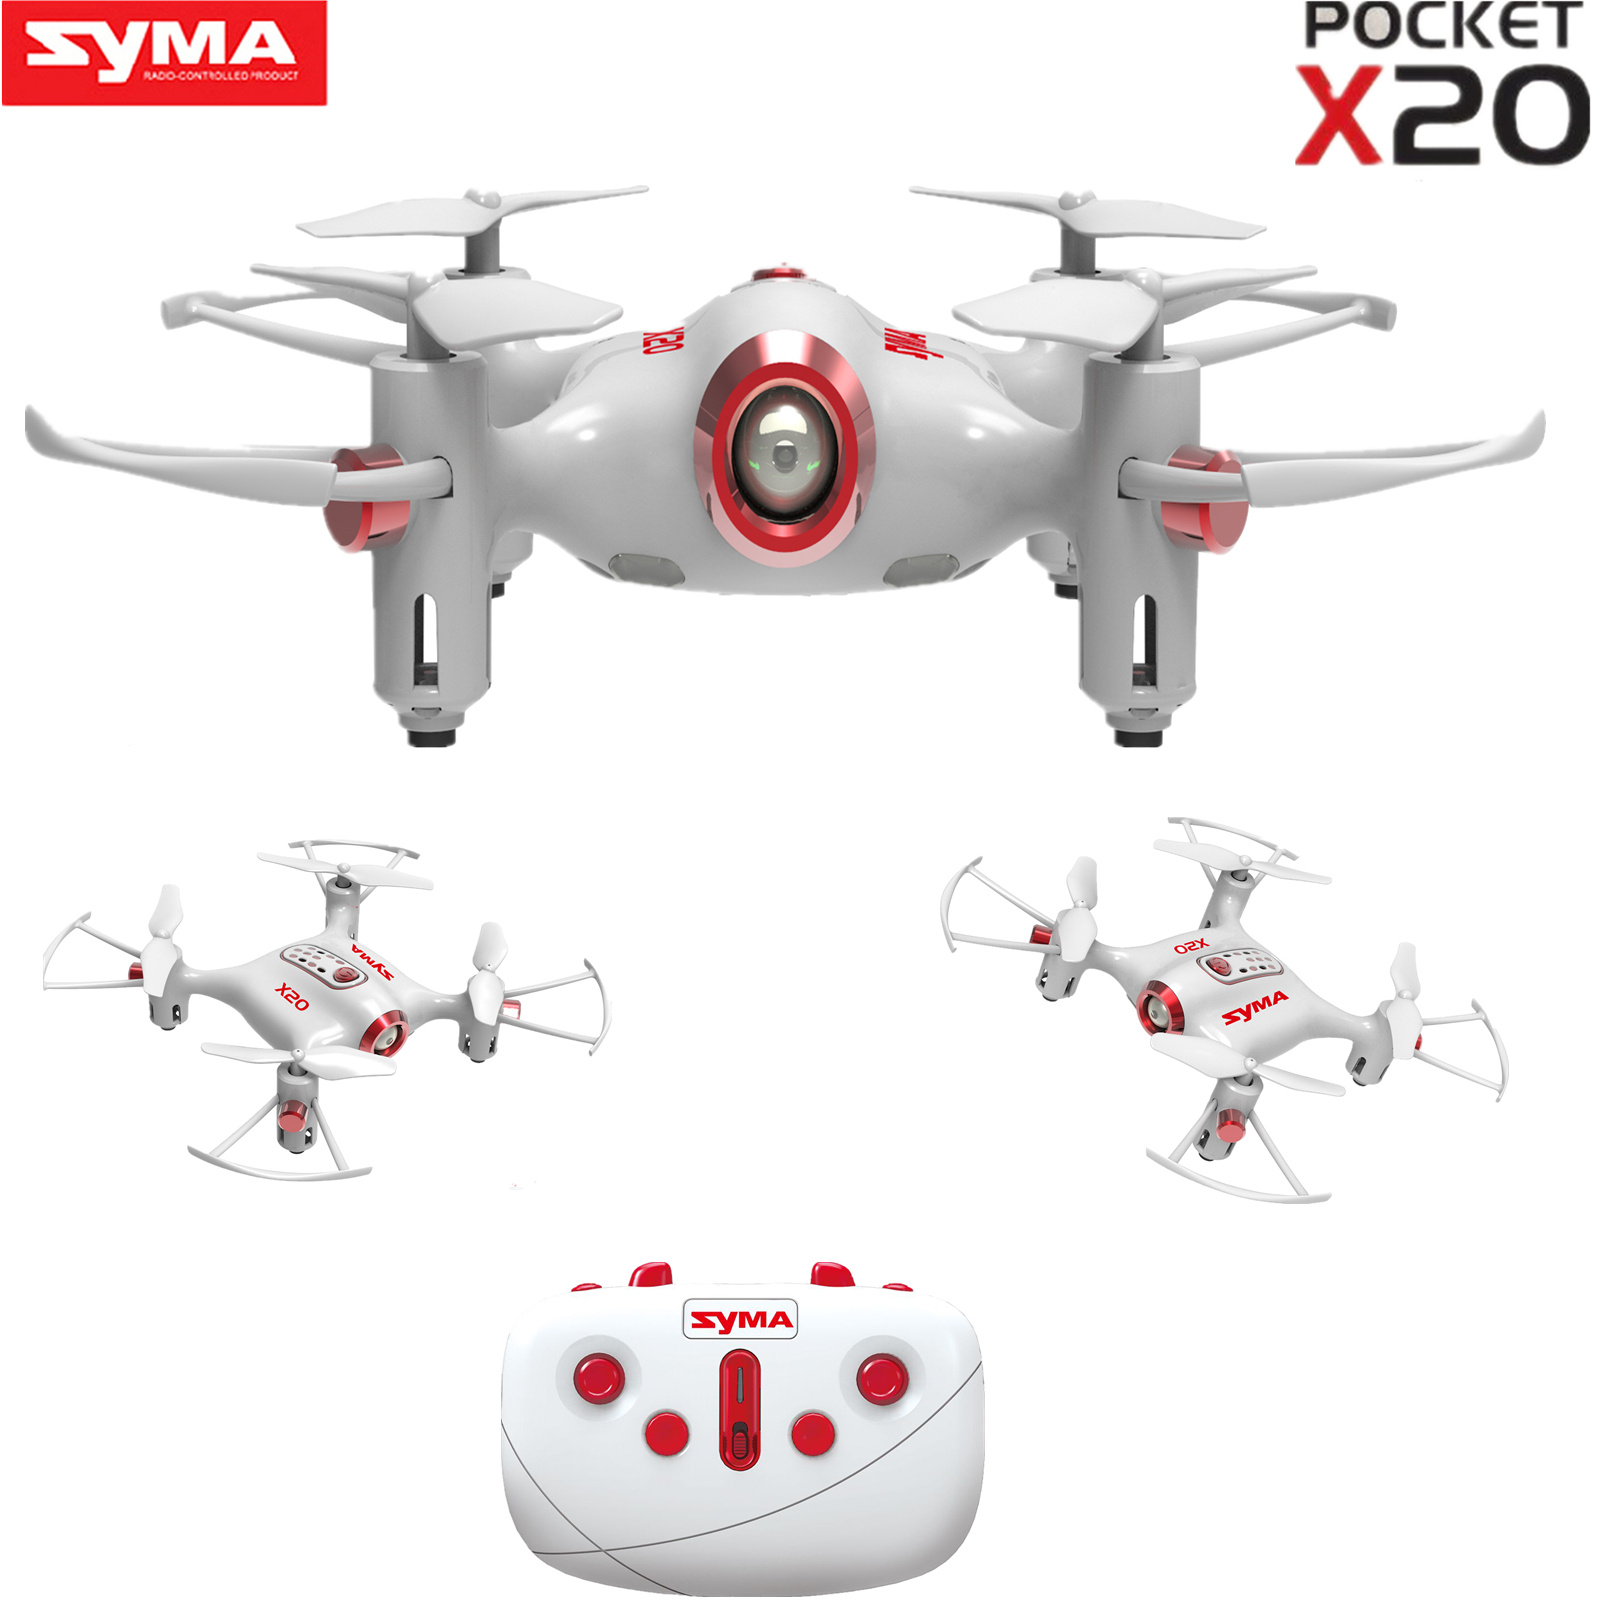 Color White Syma X12S Nano 6-Axis Gyro 4CH RC Quadcopter with Protection Guard